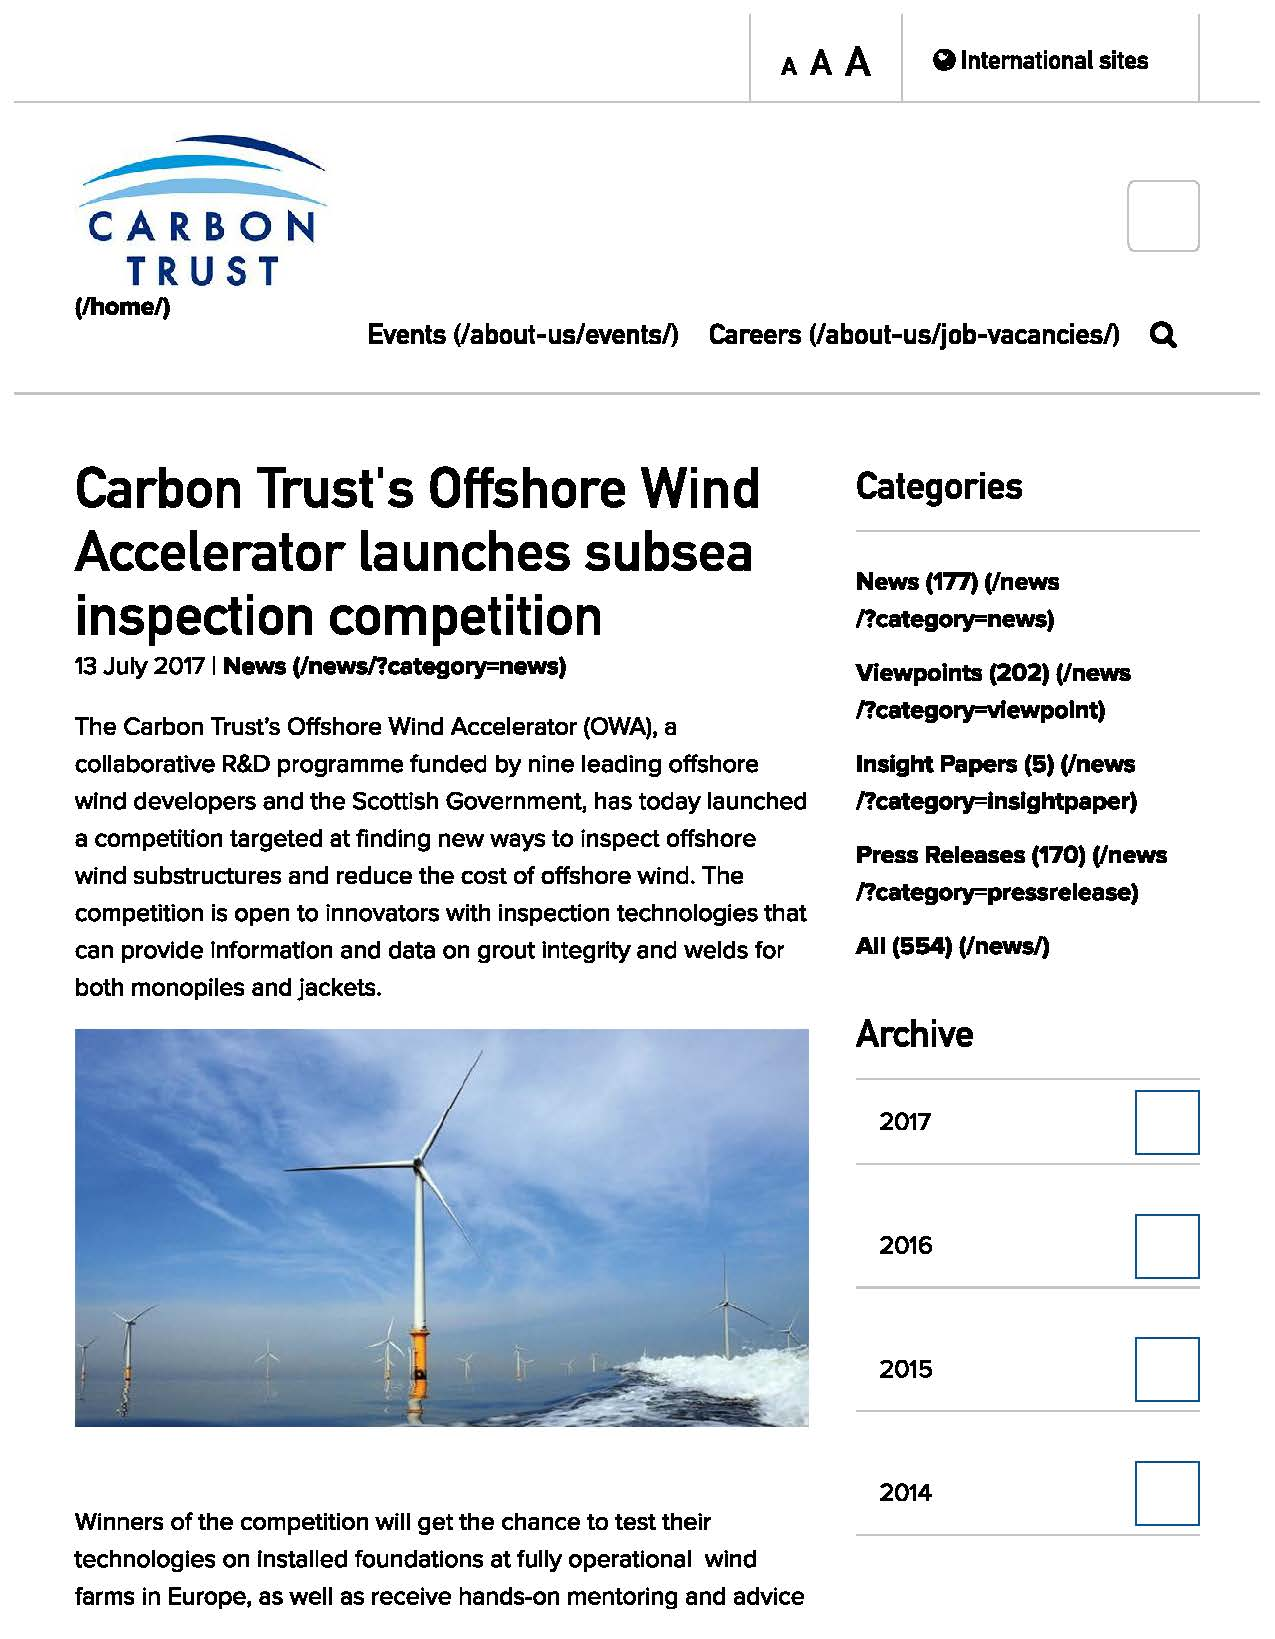 Carbon Trust's Offshore Wind Accelerator Launches Subsea Inspection Competition